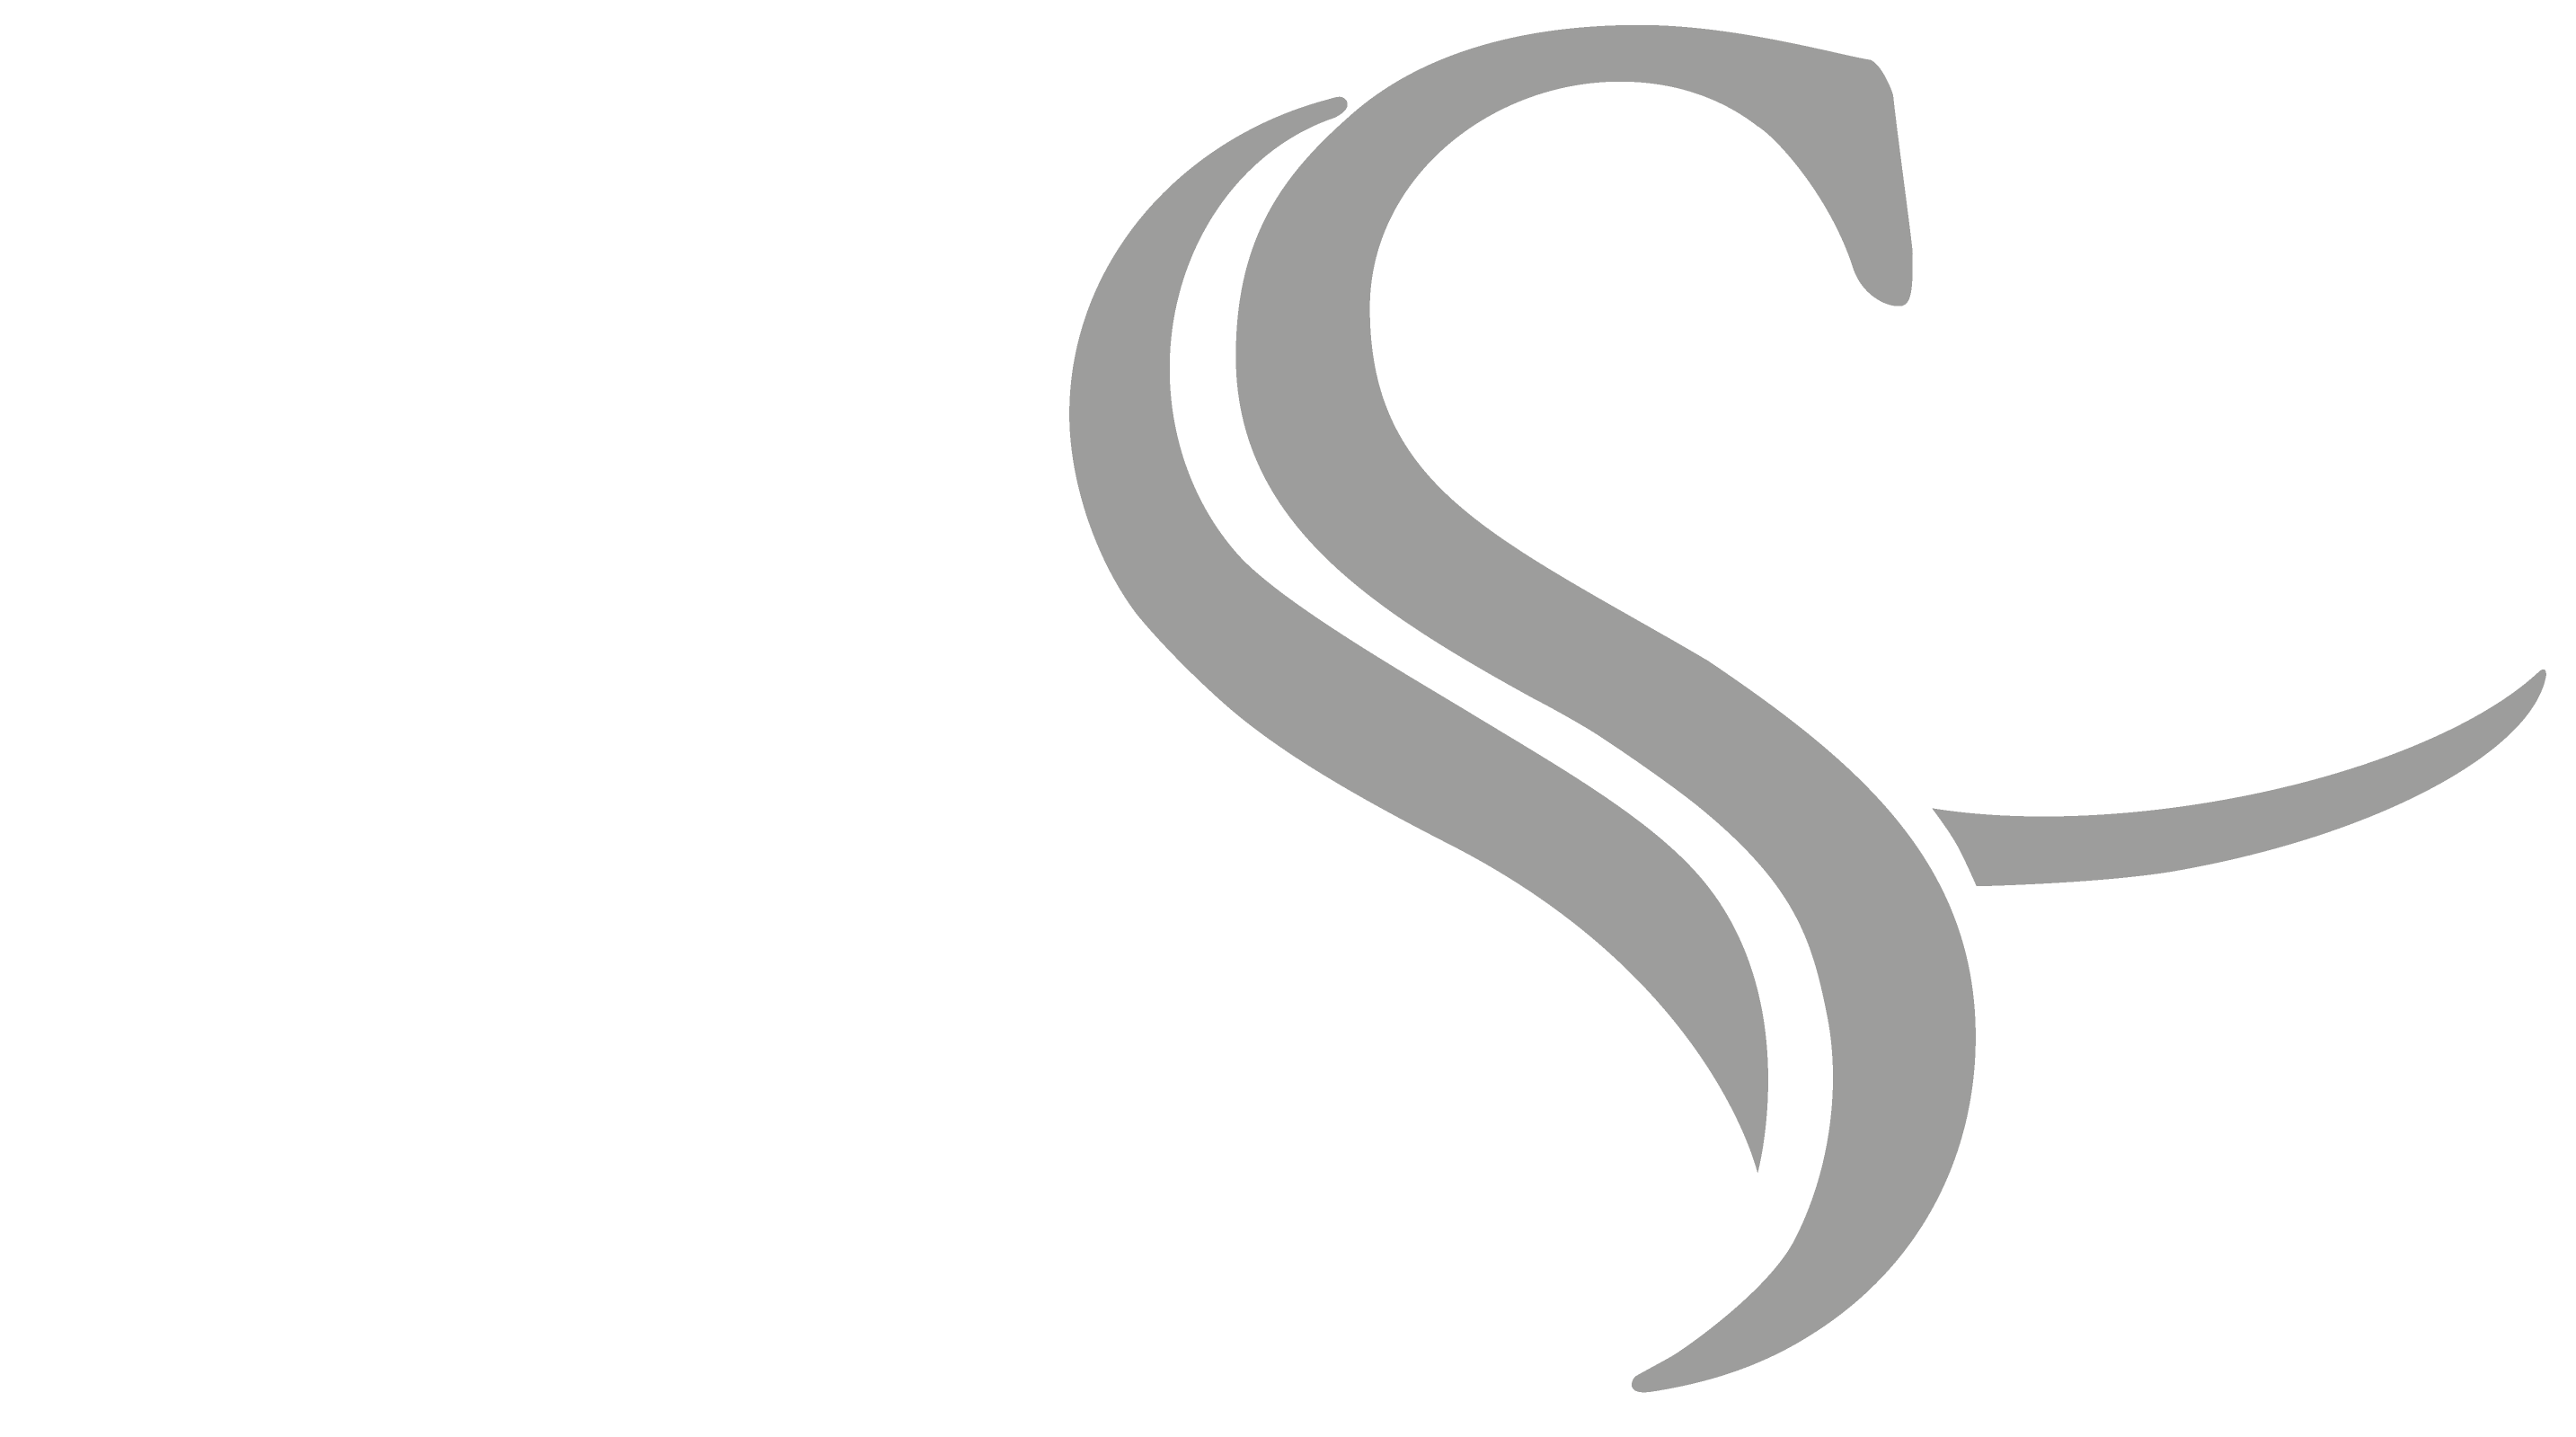 sammarco-consulting2.png